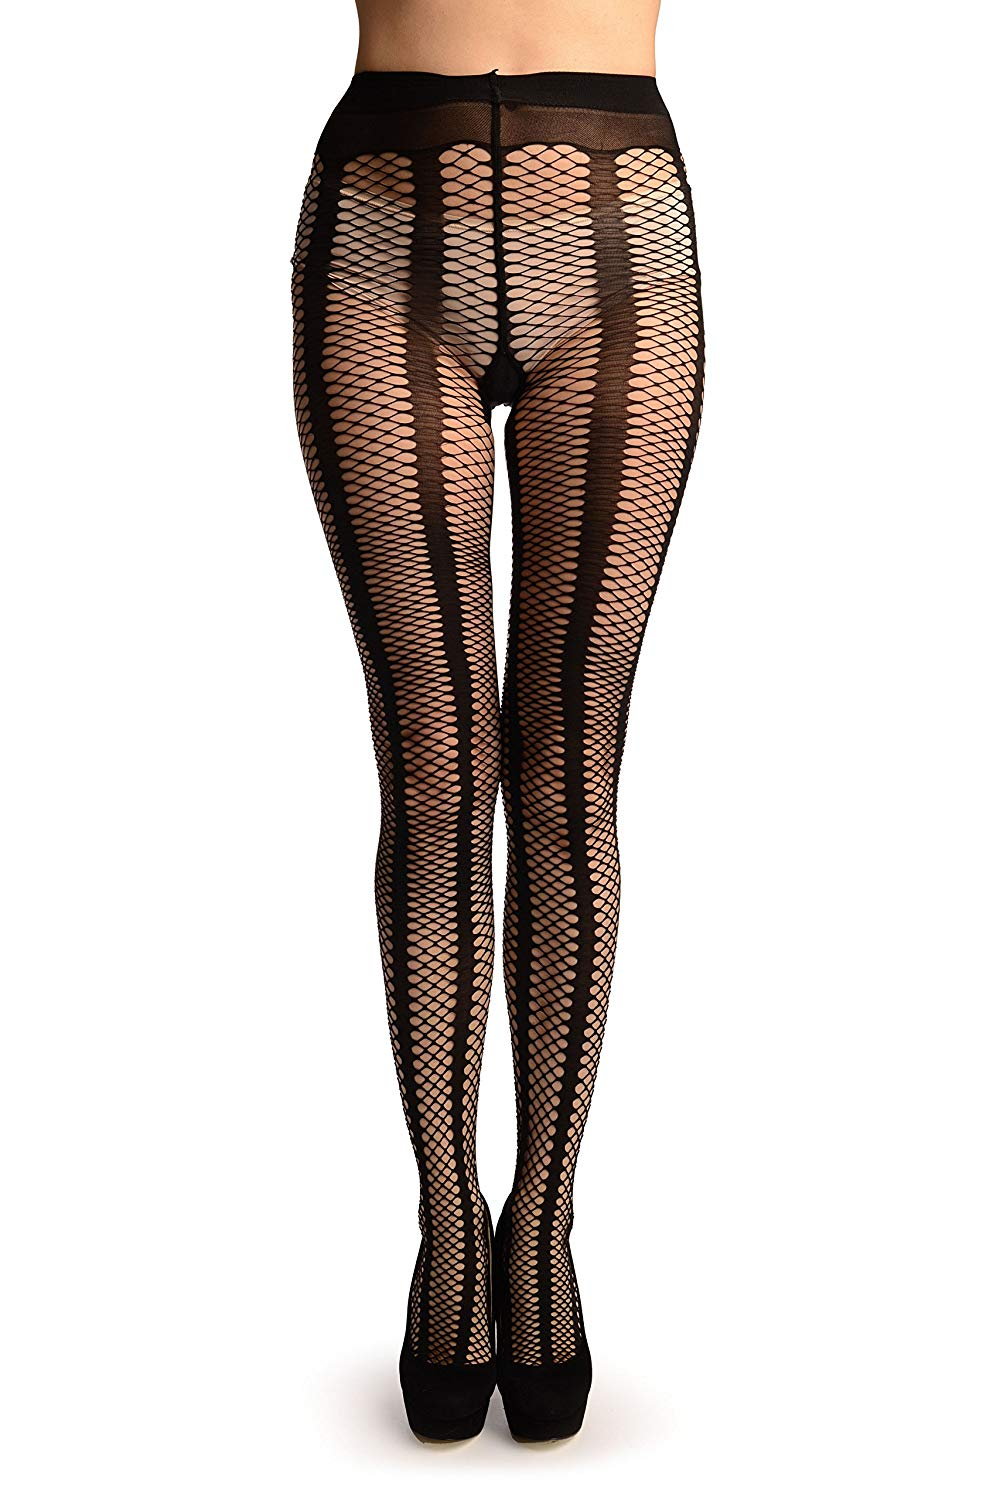 dc95cc1223d Get Quotations · Black Sick Mesh Fishnet With Black Stripes Tights -  Pantyhose (Tights)